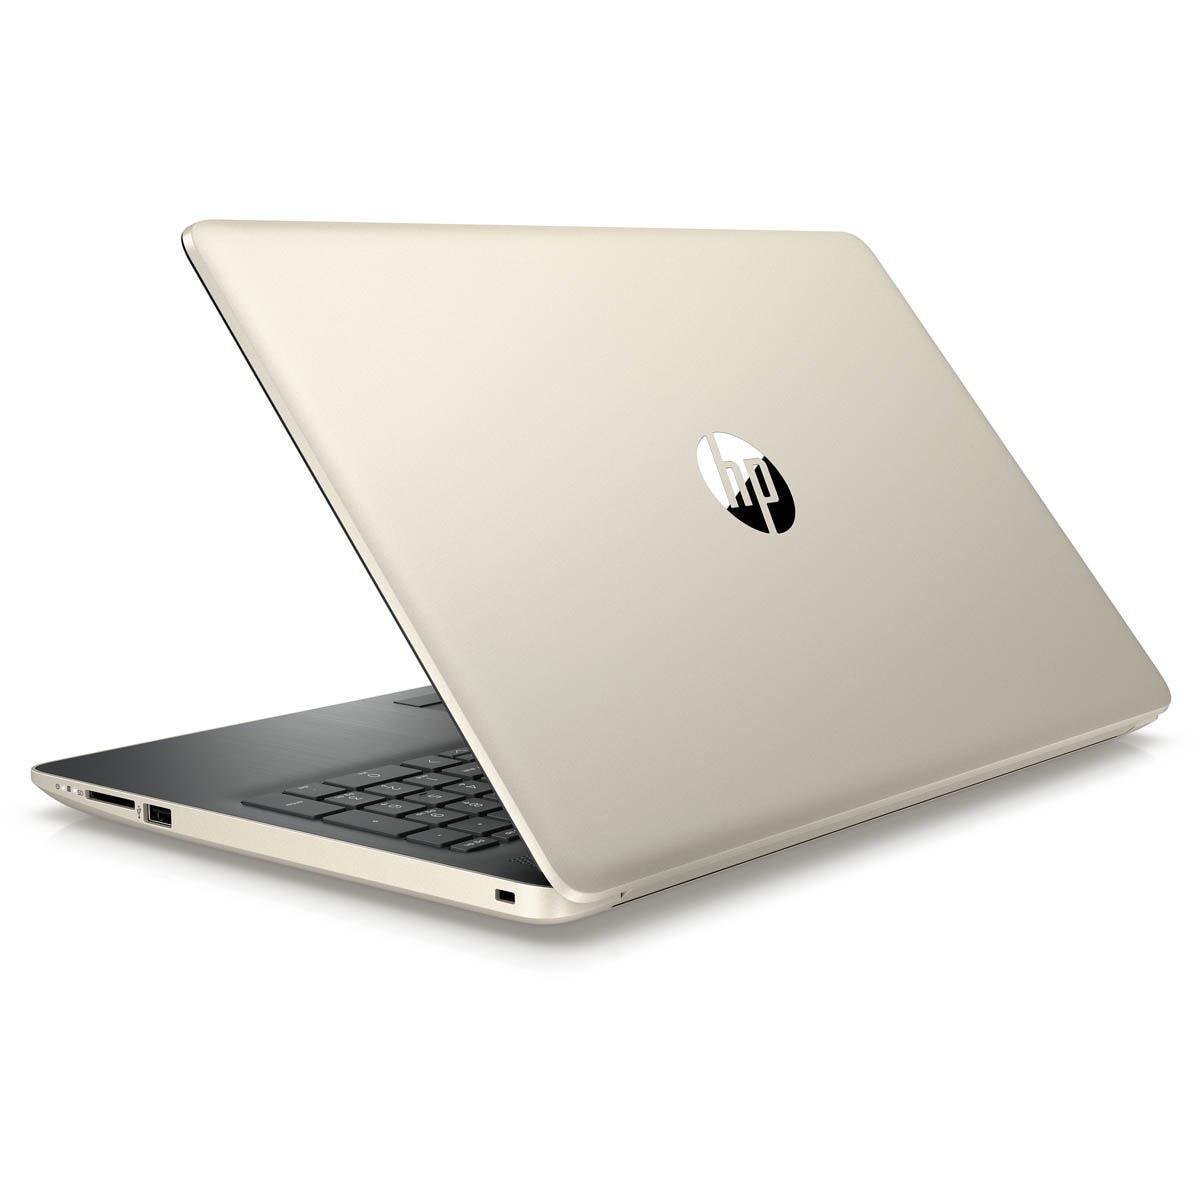 Laptop hp 15-db0004la  - Sanborns